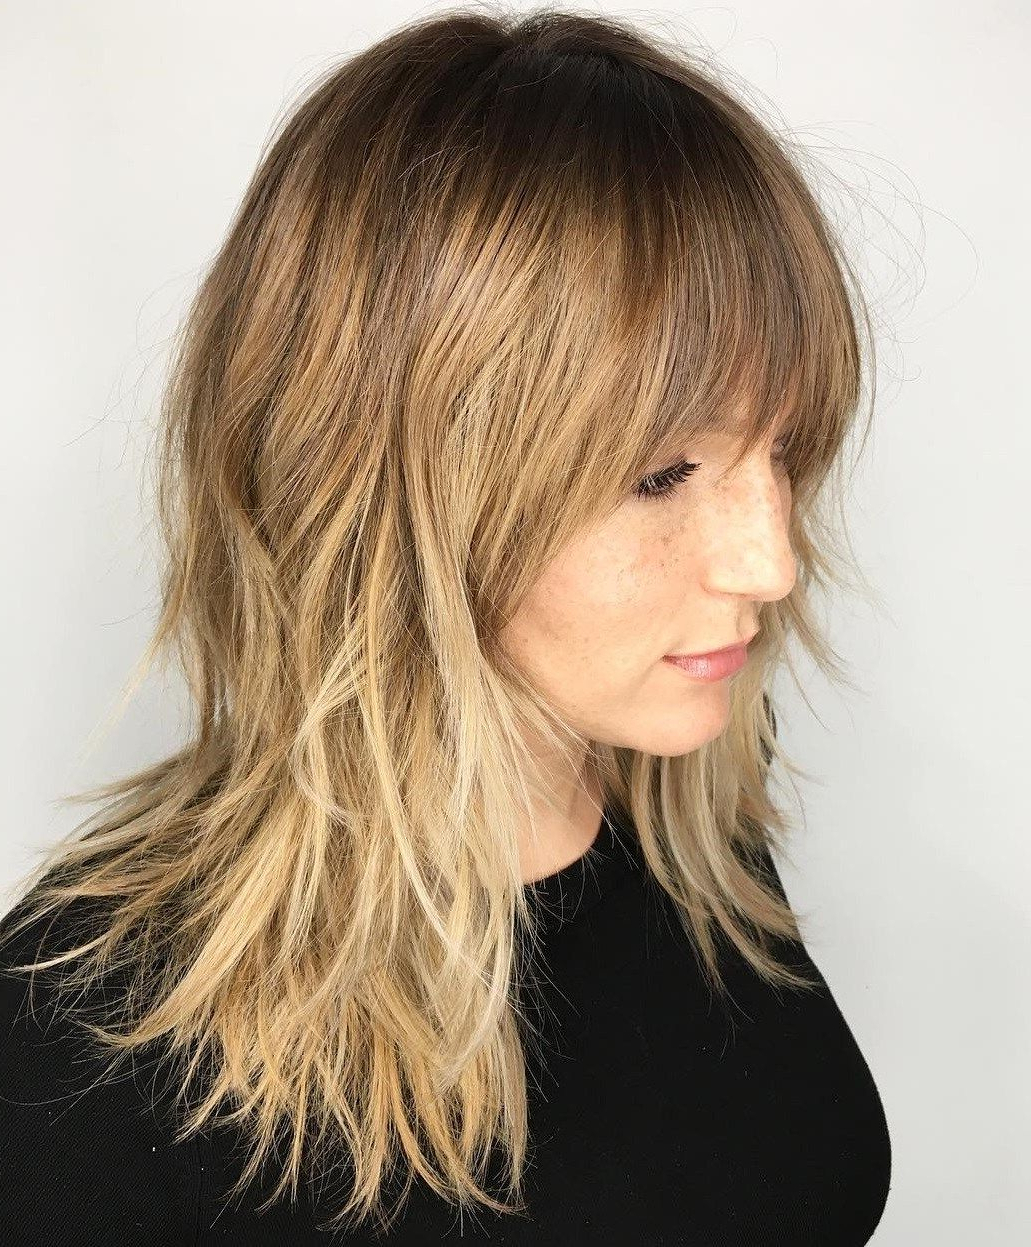 60 Lovely Long Shag Haircuts For Effortless Stylish Looks Pertaining To Well Known Golden Bronde Razored Shag Haircuts For Long Hair (Gallery 3 of 20)